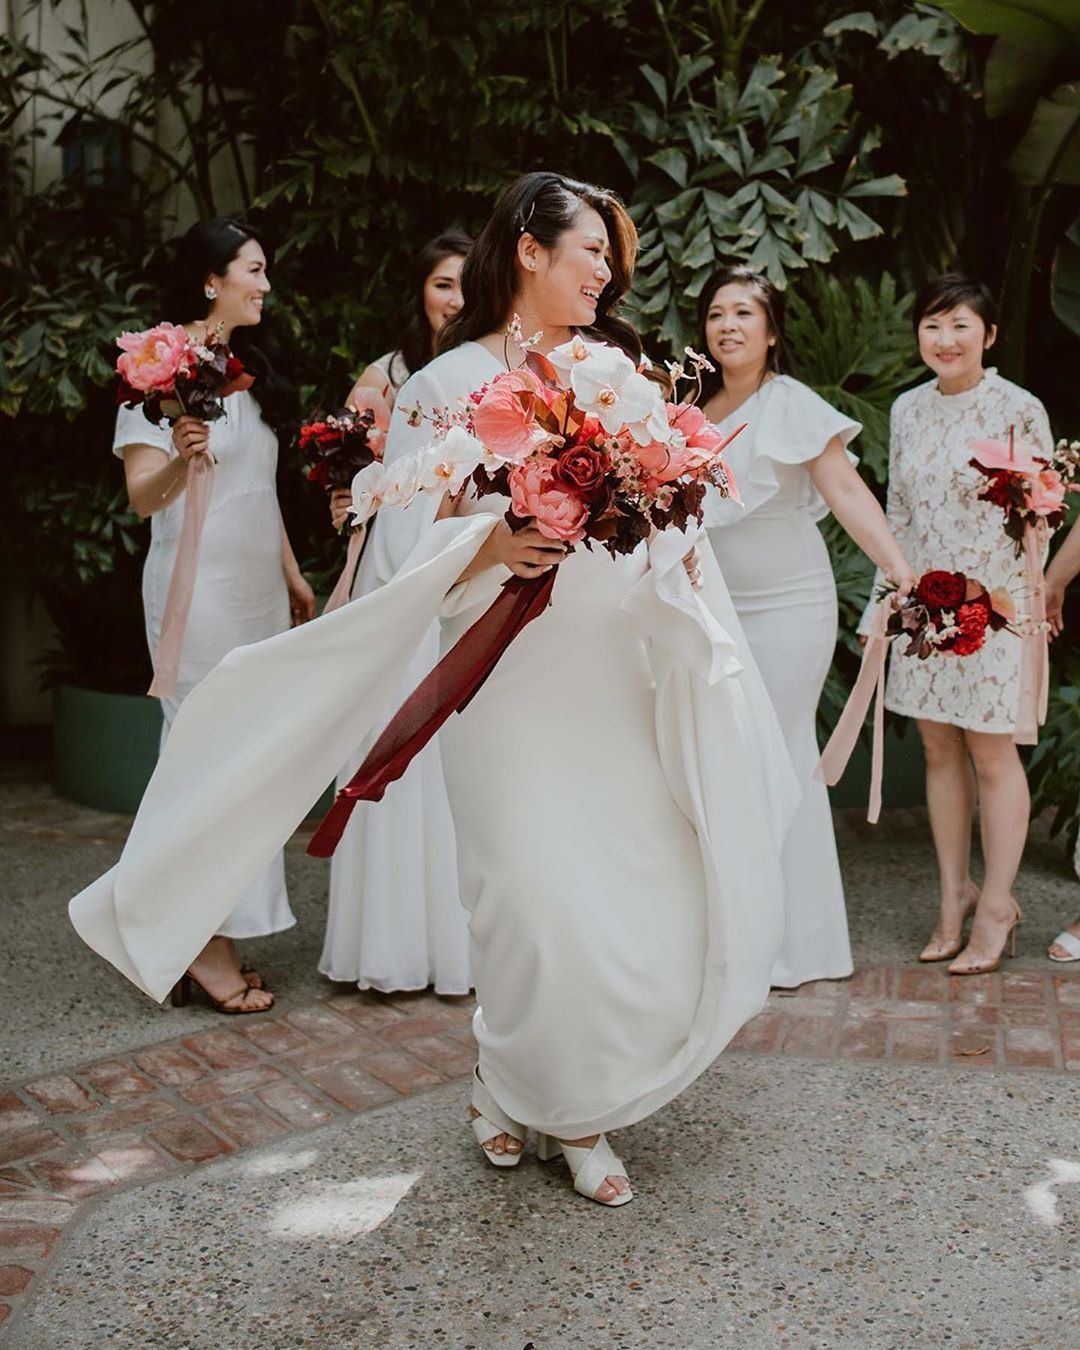 Bridesmaids in dresses